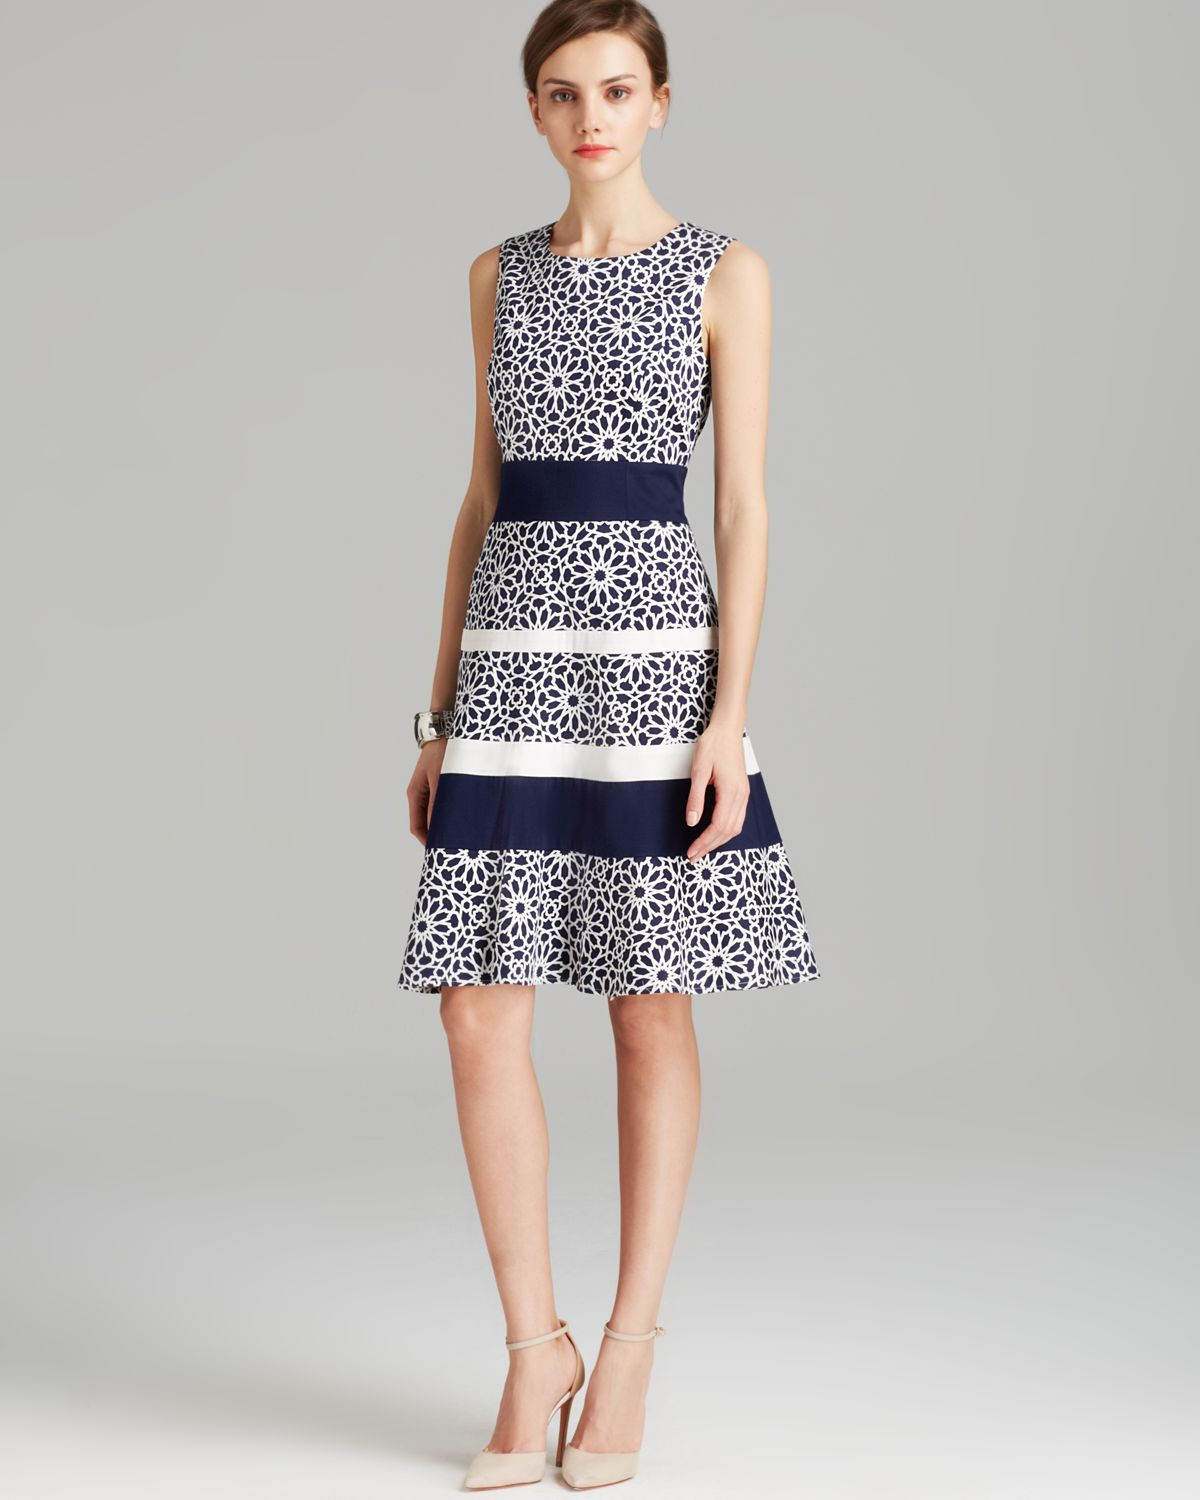 408133a243 anne klein clothes Lyst - Anne Klein Dress Sleeveless Print Swing Fit and  Flare in Blue